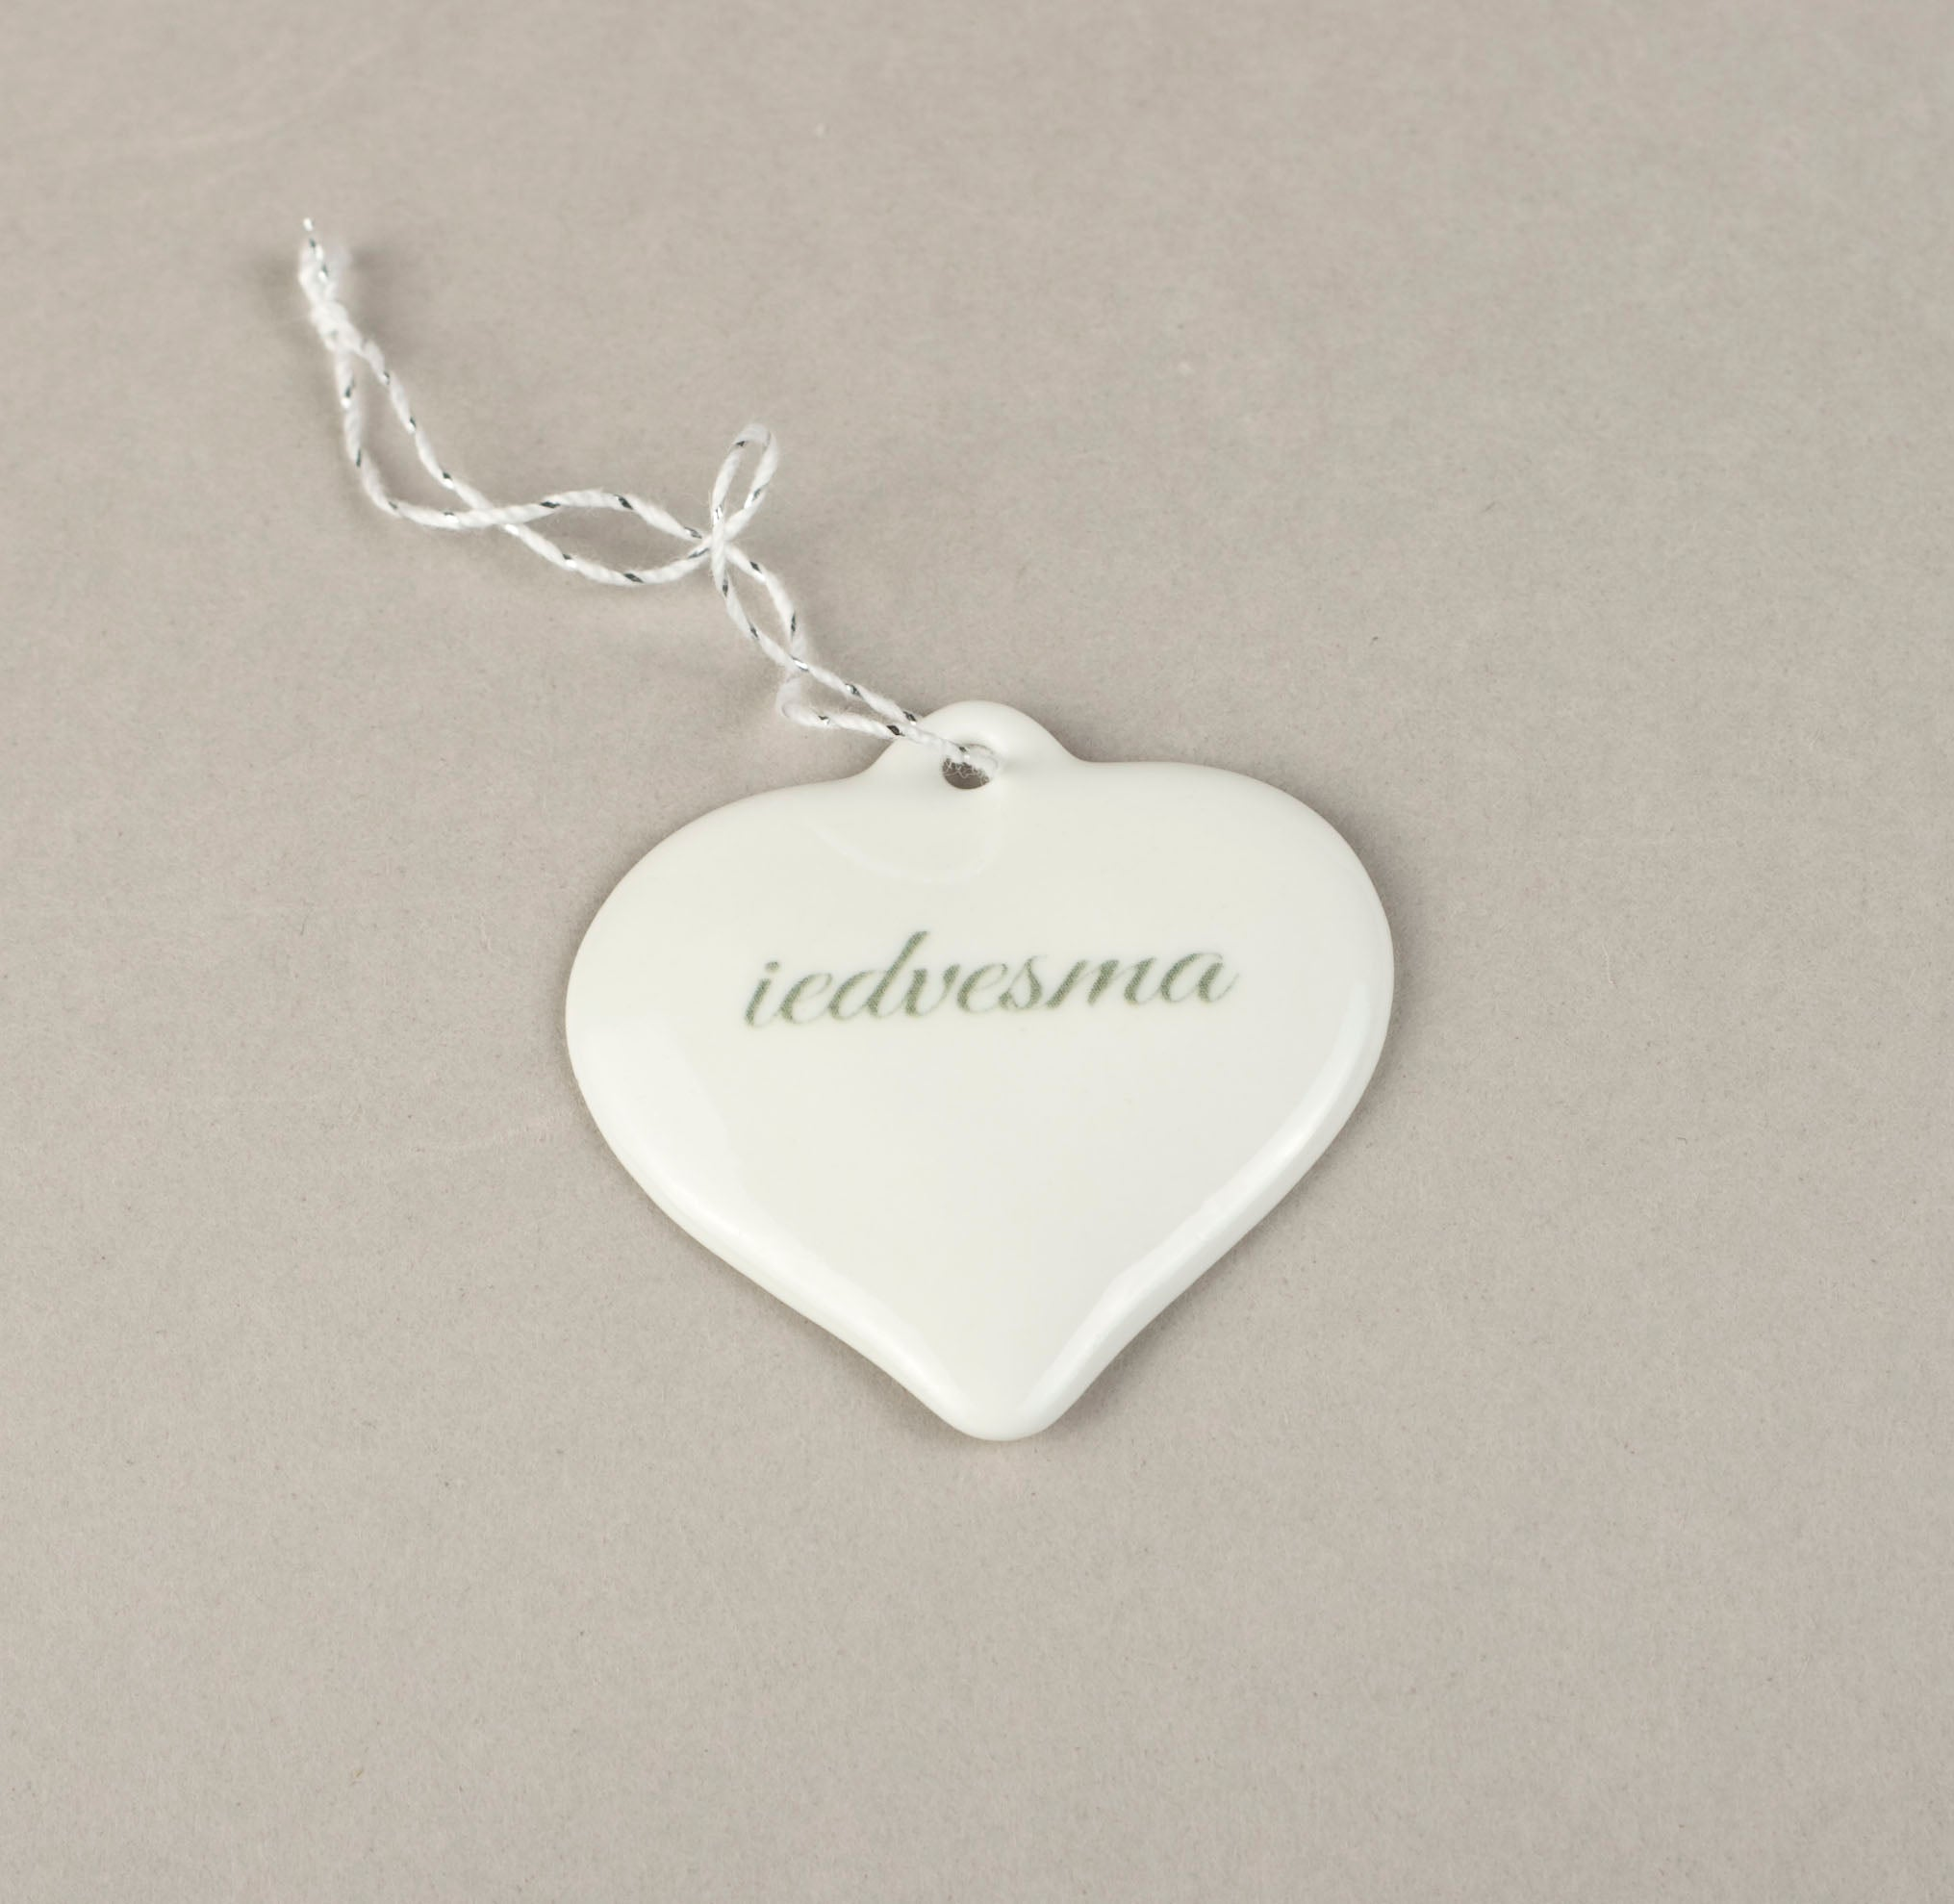 Porcelain Decorations For Christmas Trees - Heart With Print